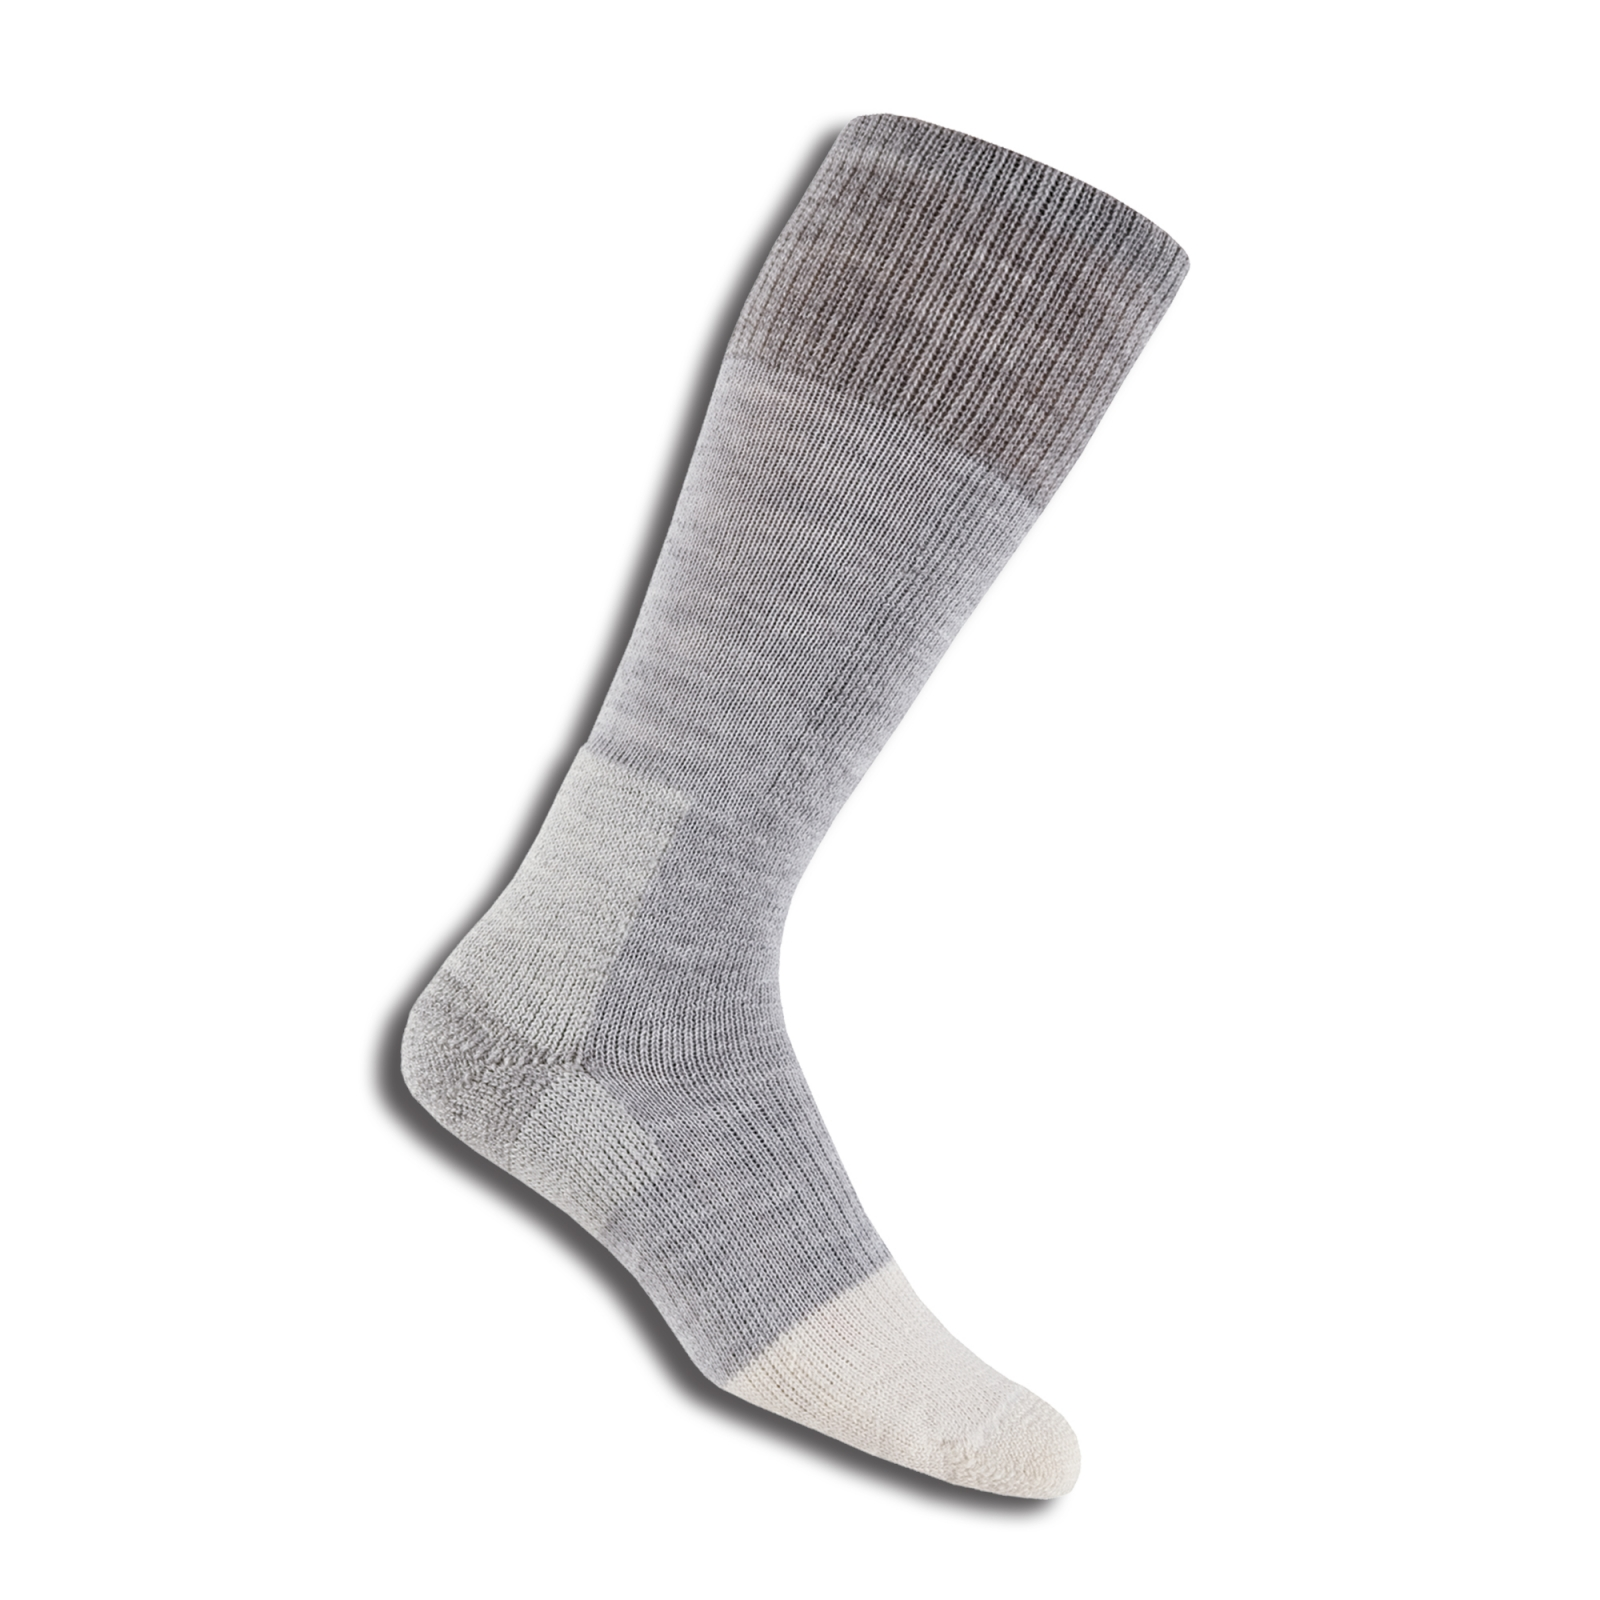 Thorlos Mountaineering Socks - Grey